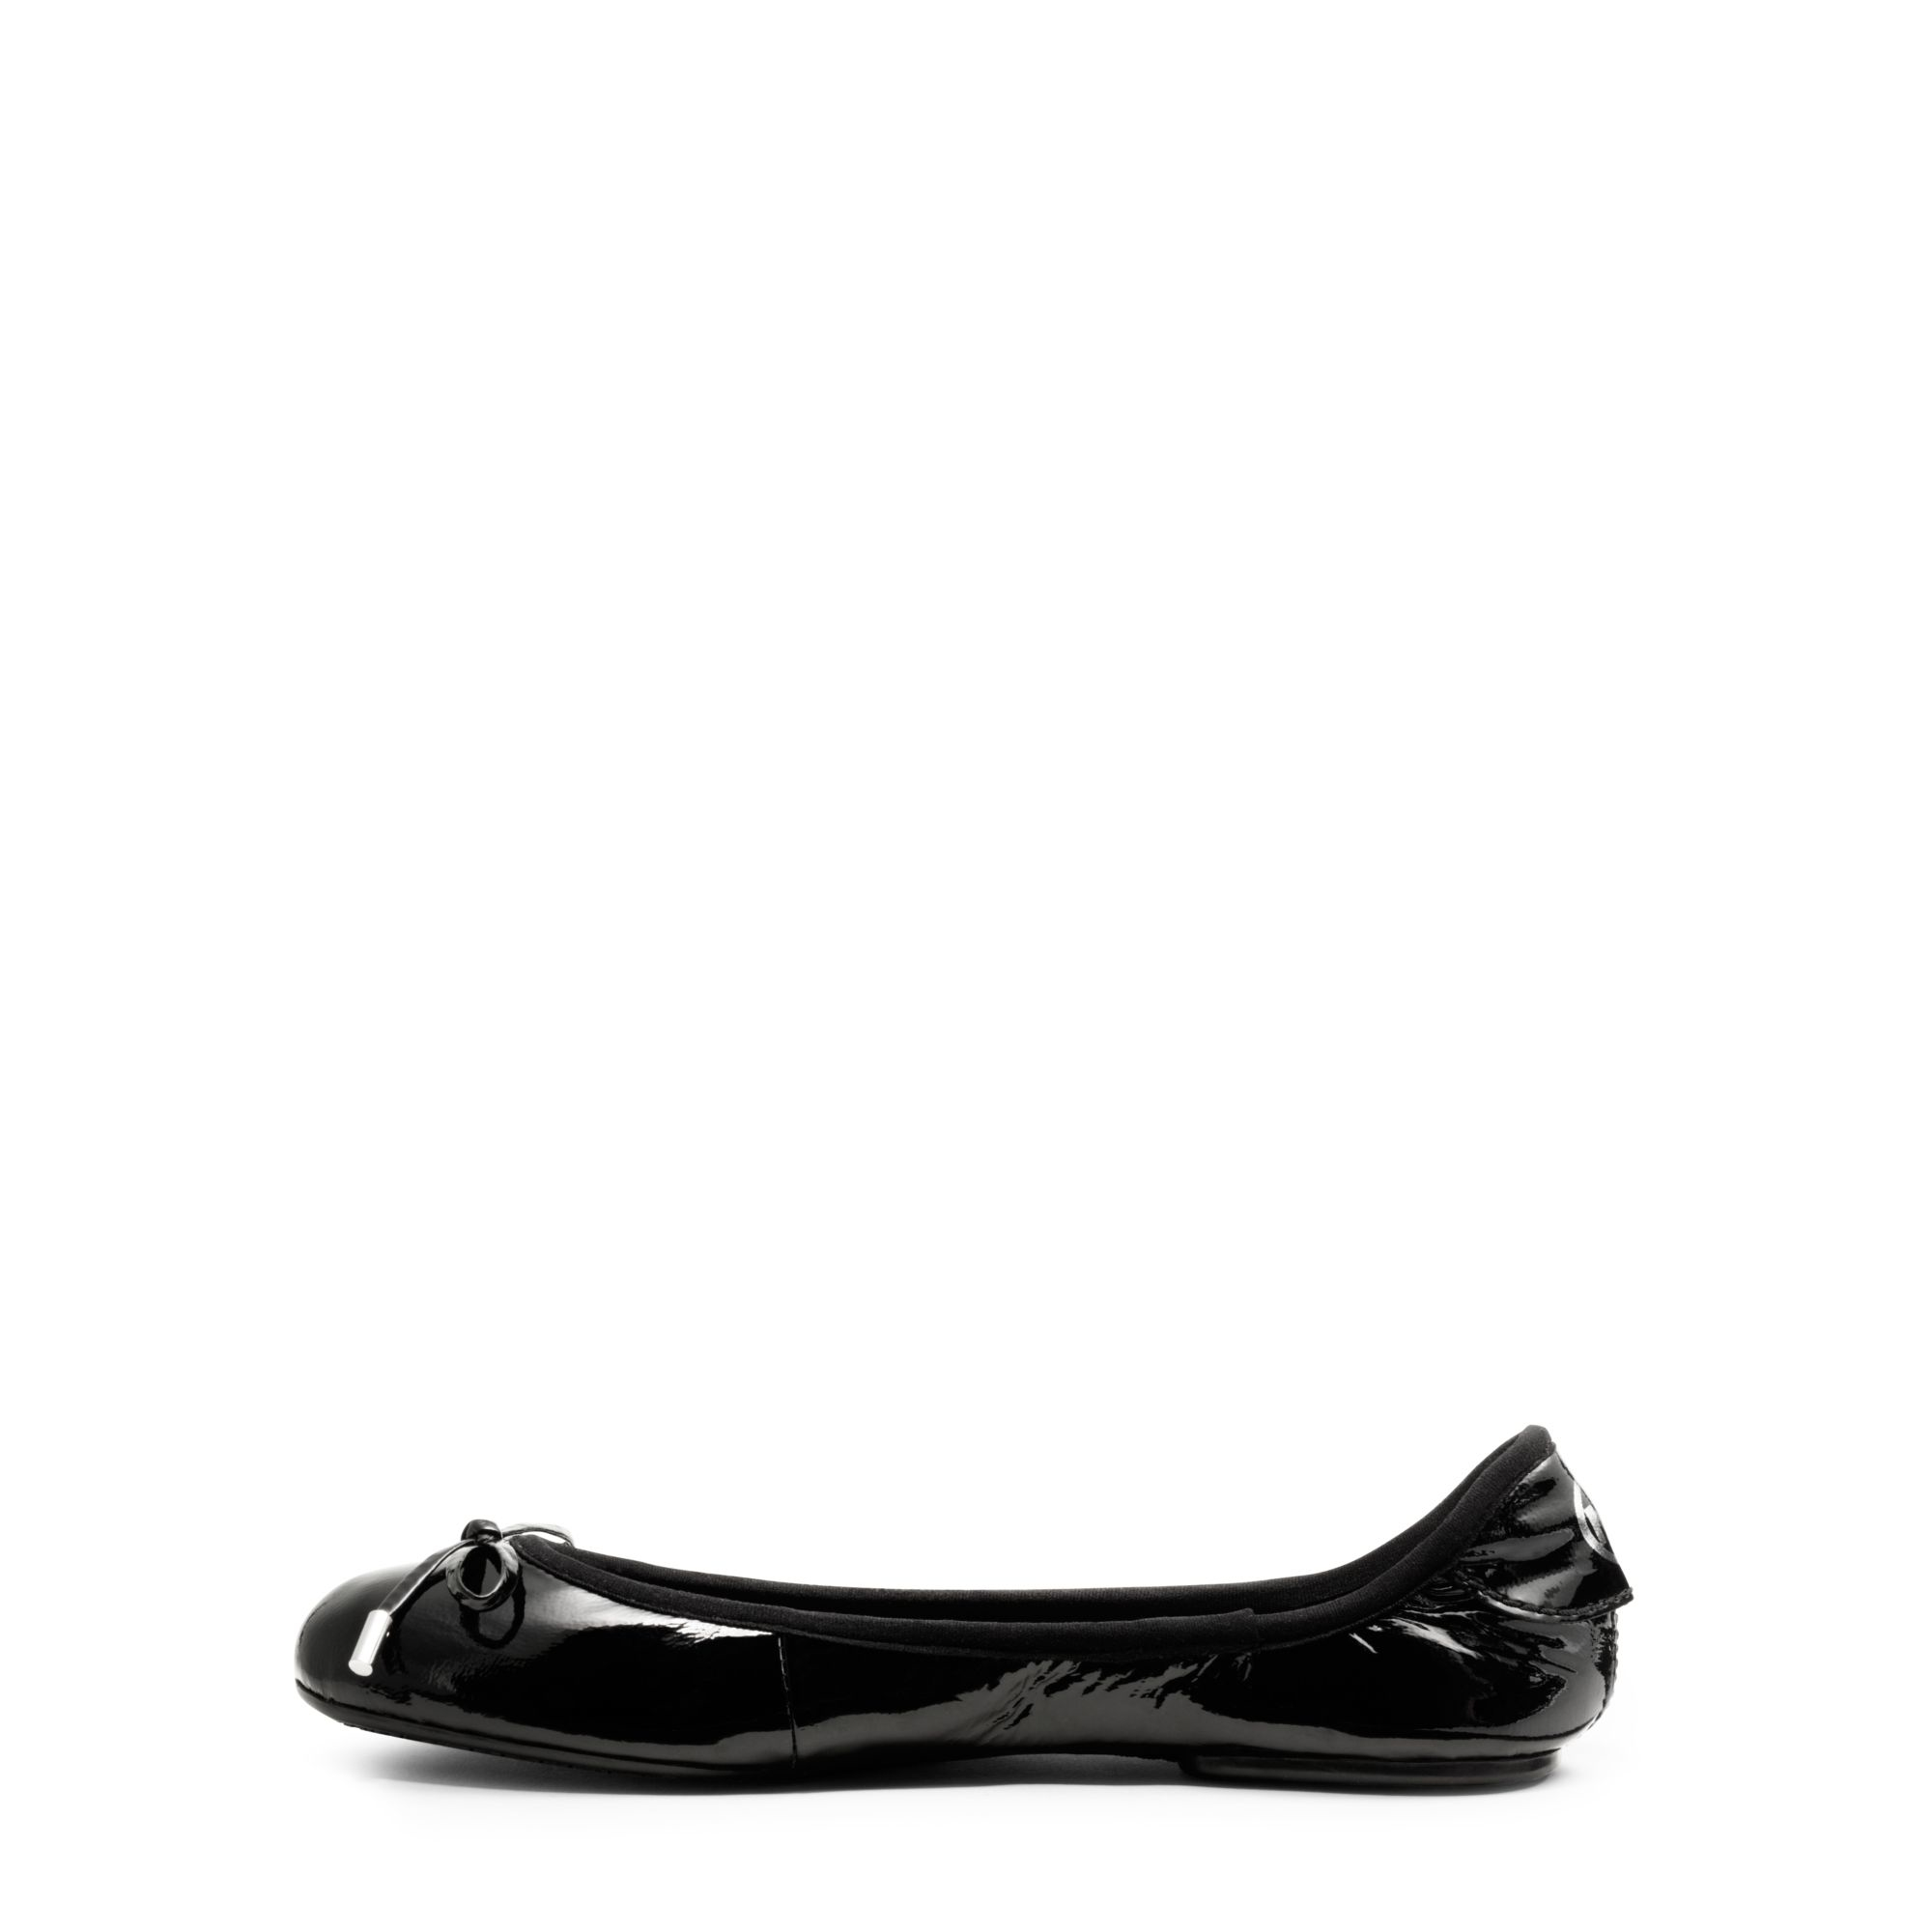 297e0c8d870 Lyst - Michael kors Patent-leather City Ballet Flat in Black